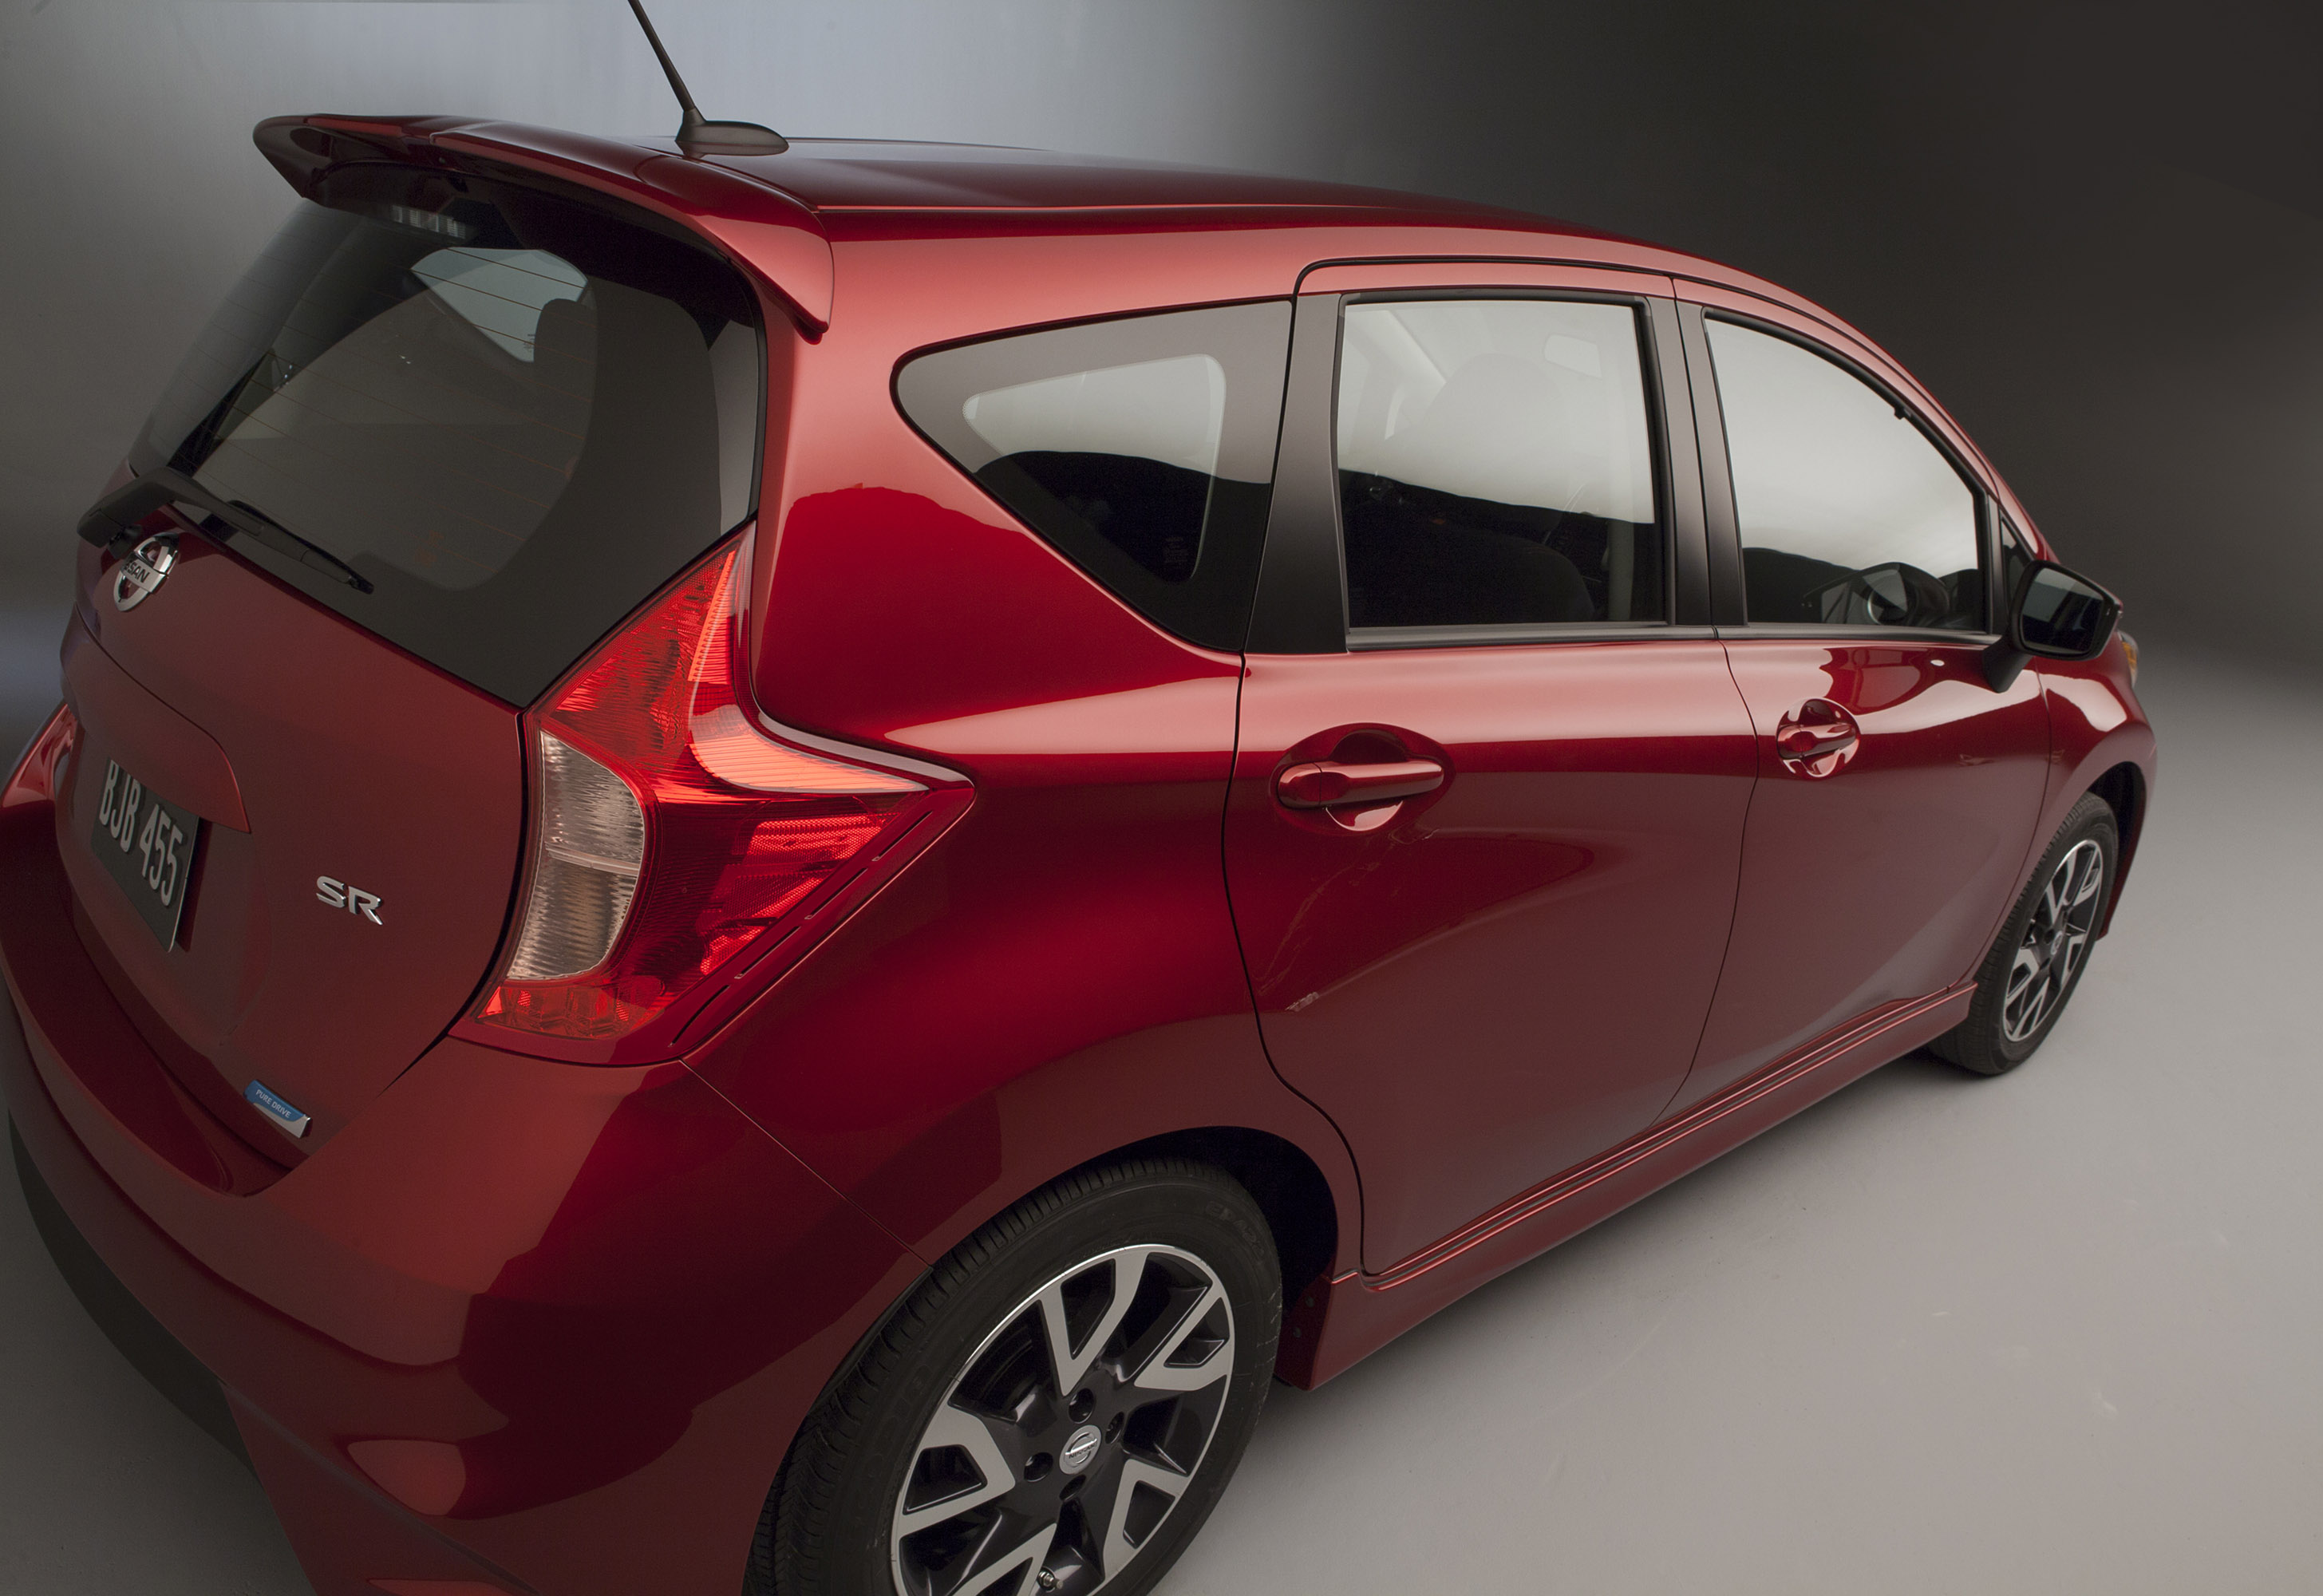 versa sv wiki right facelift nissan file model front